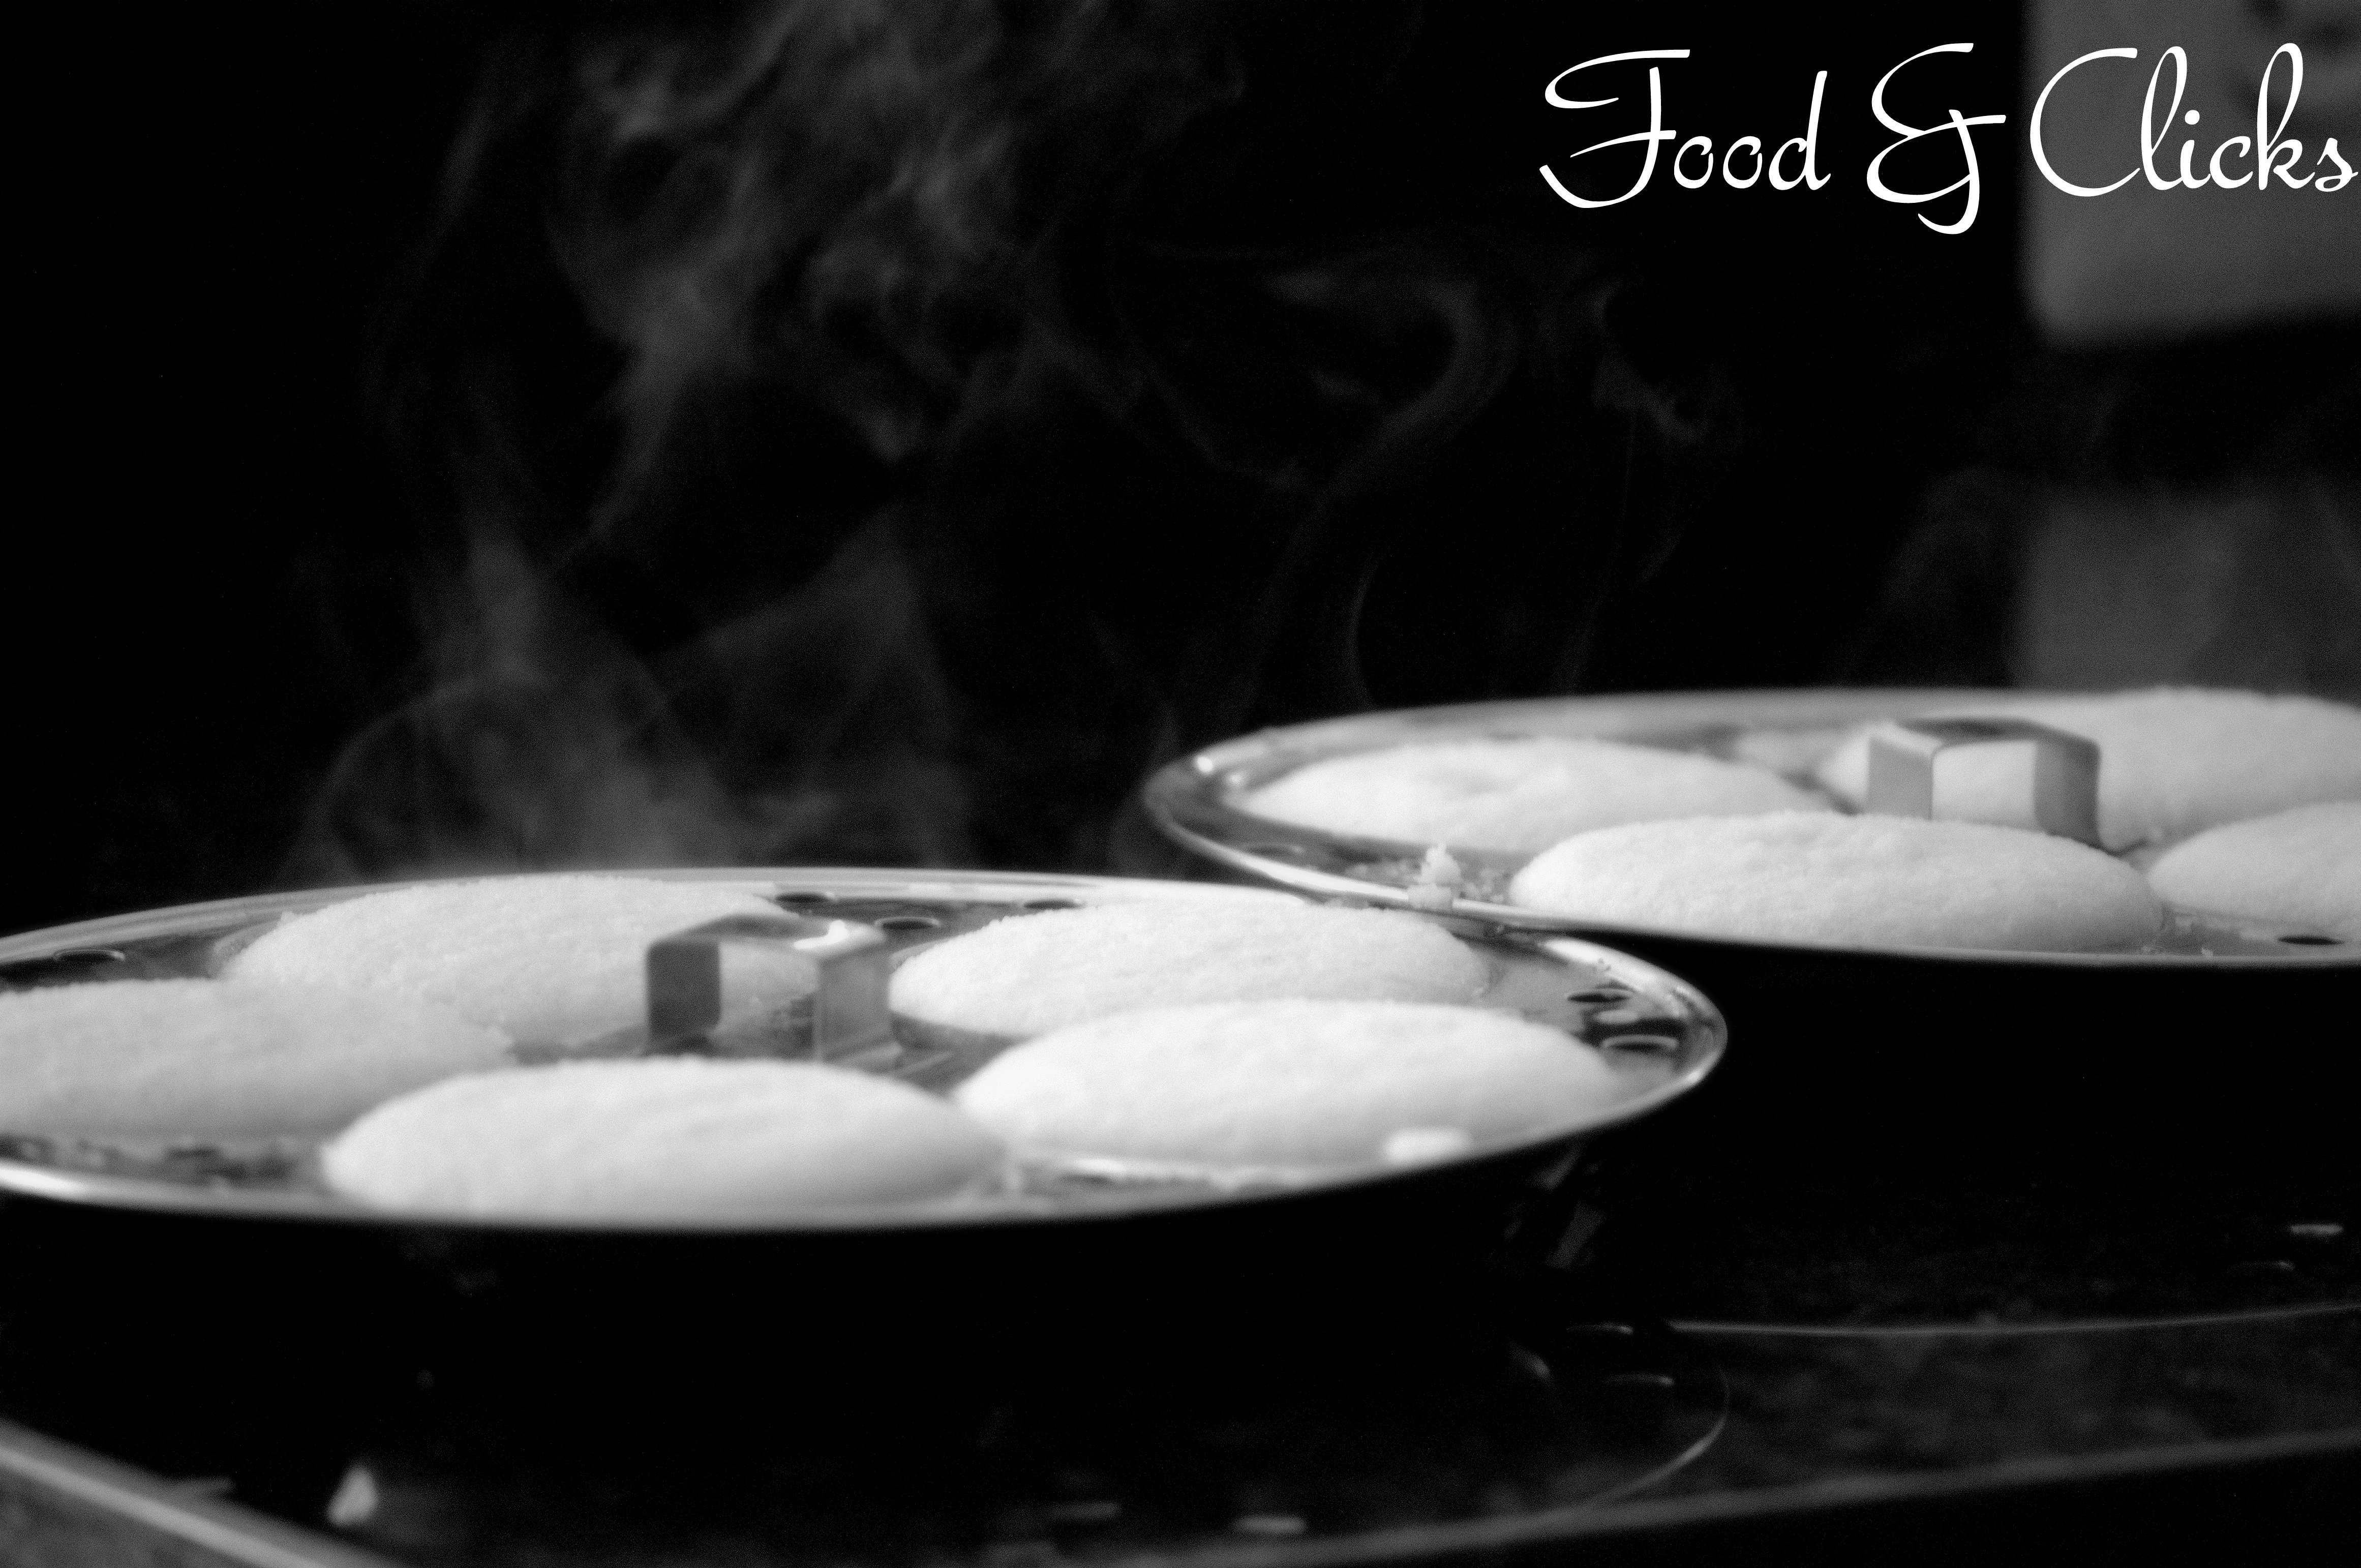 Sunday Breakfast  -  Hot Idli's...Yummmm!!!!